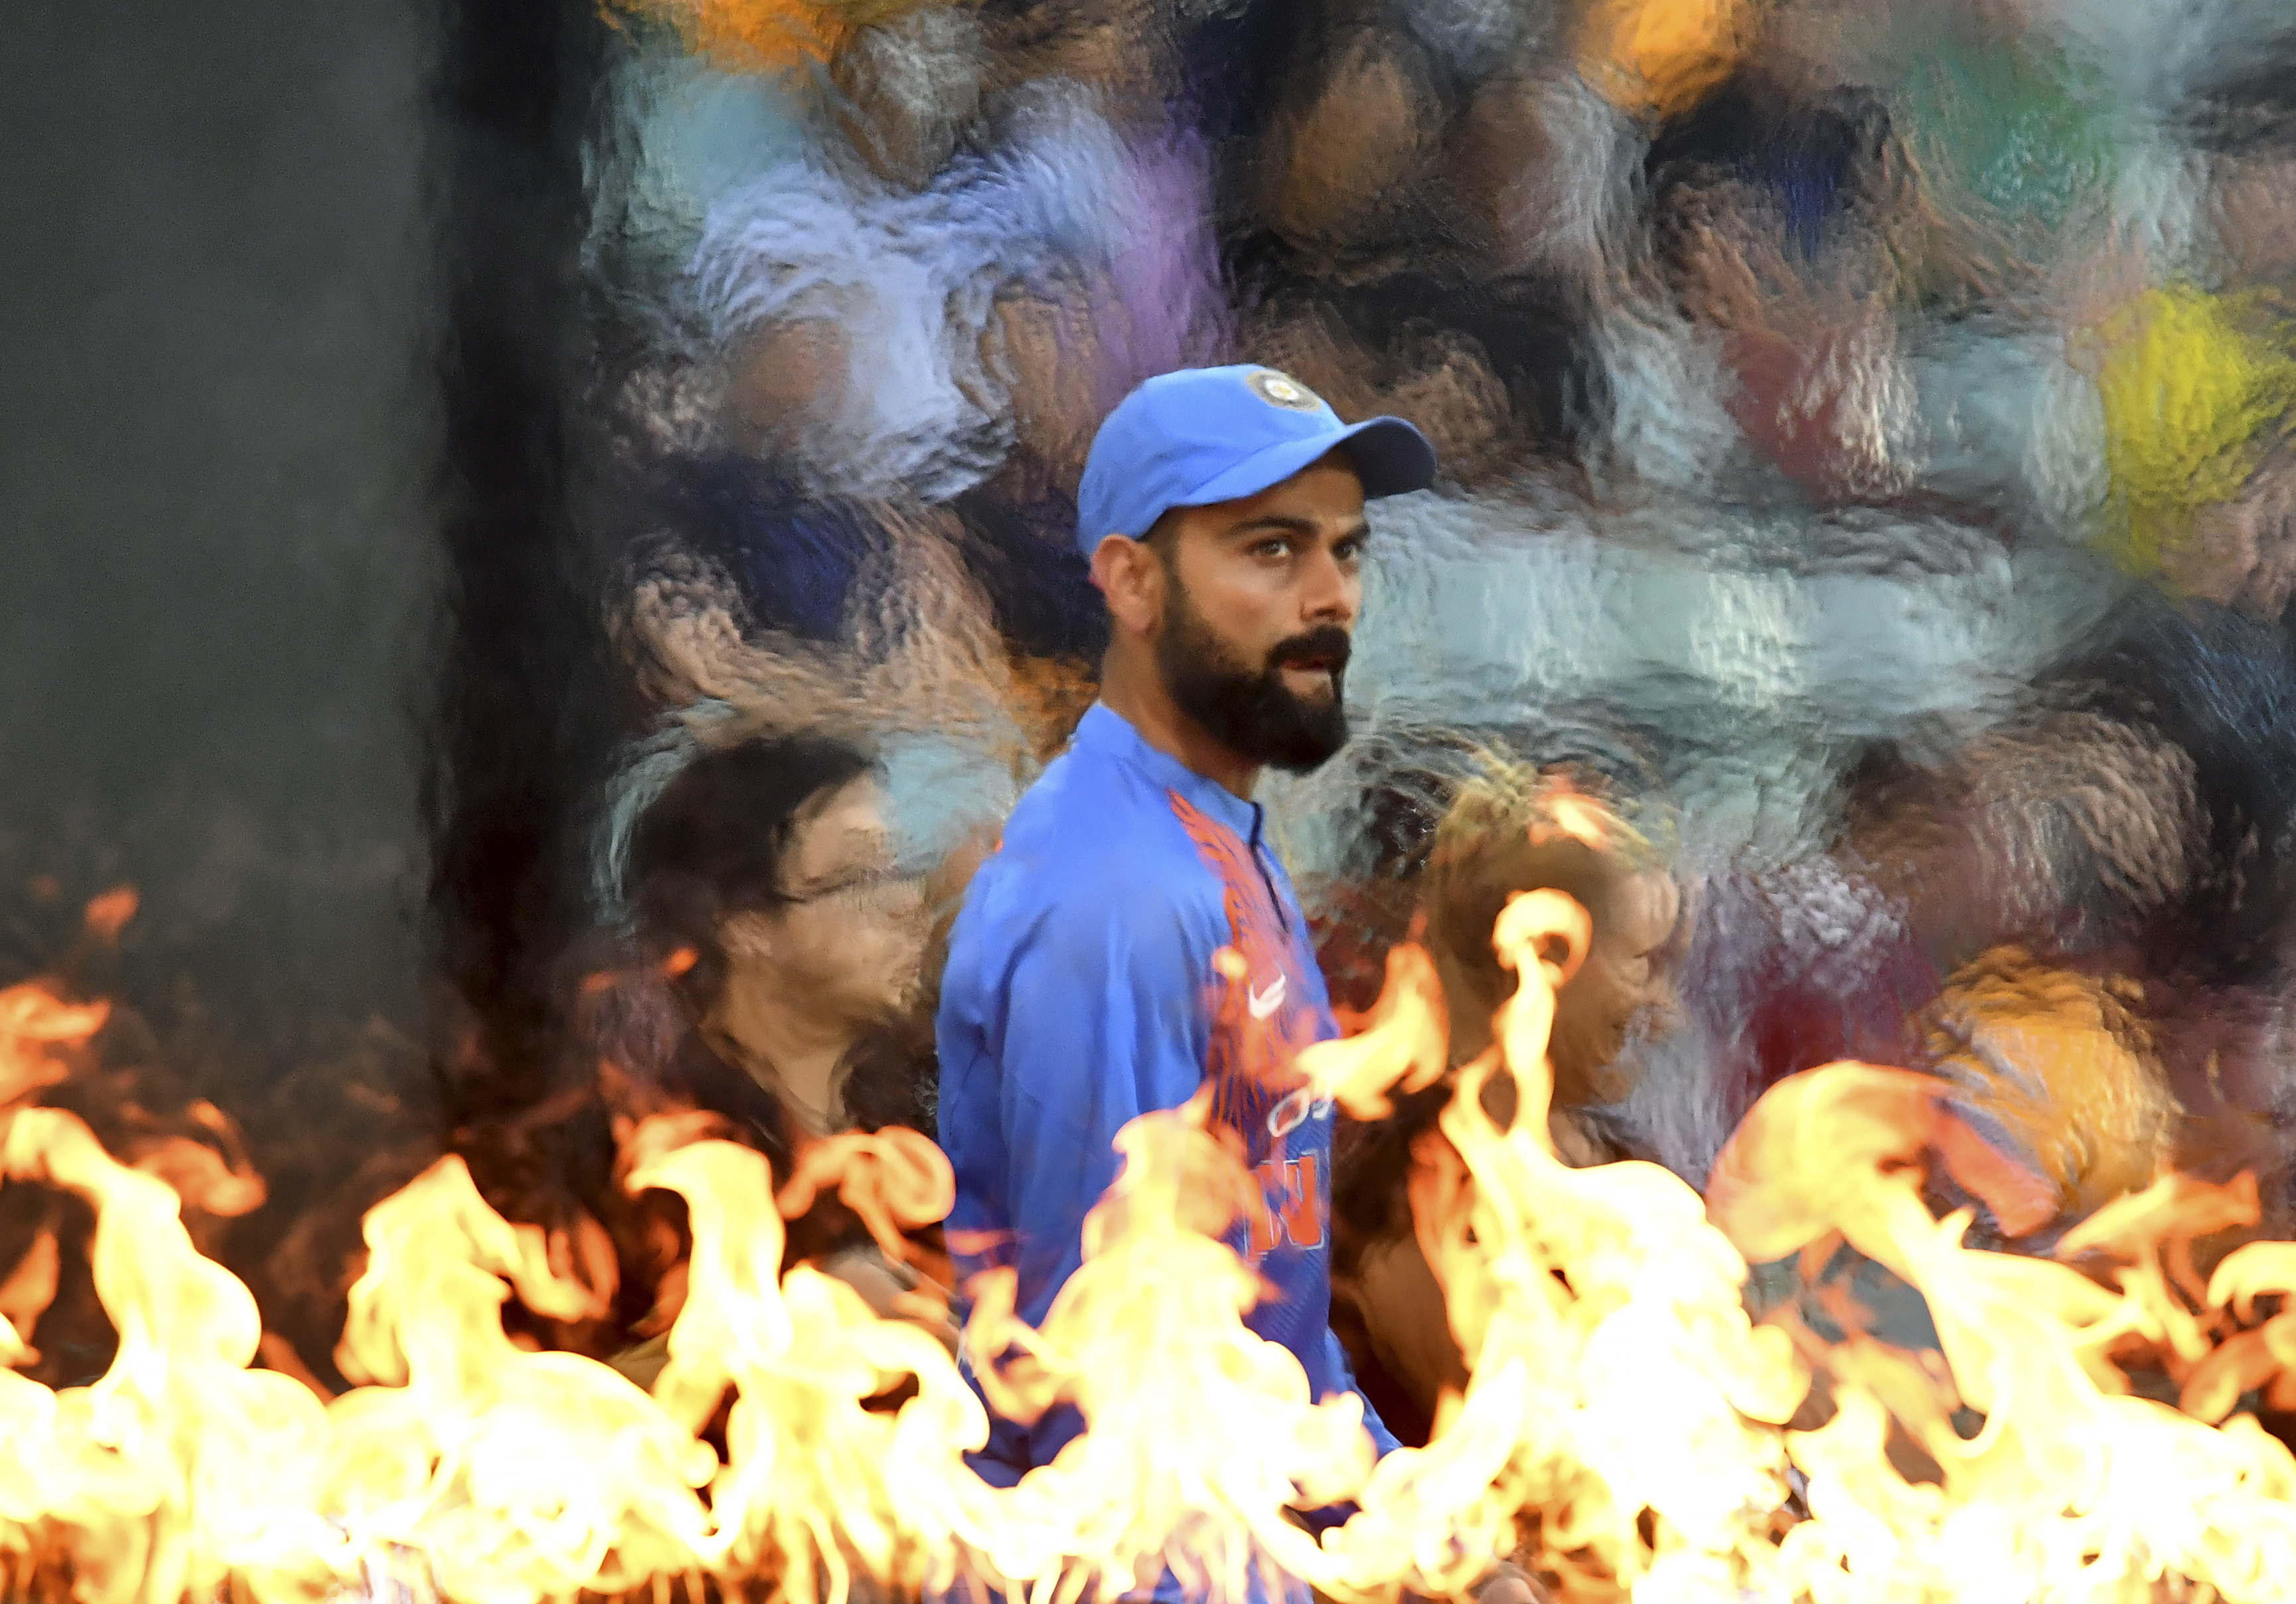 Kohli led his side to victories in Australia